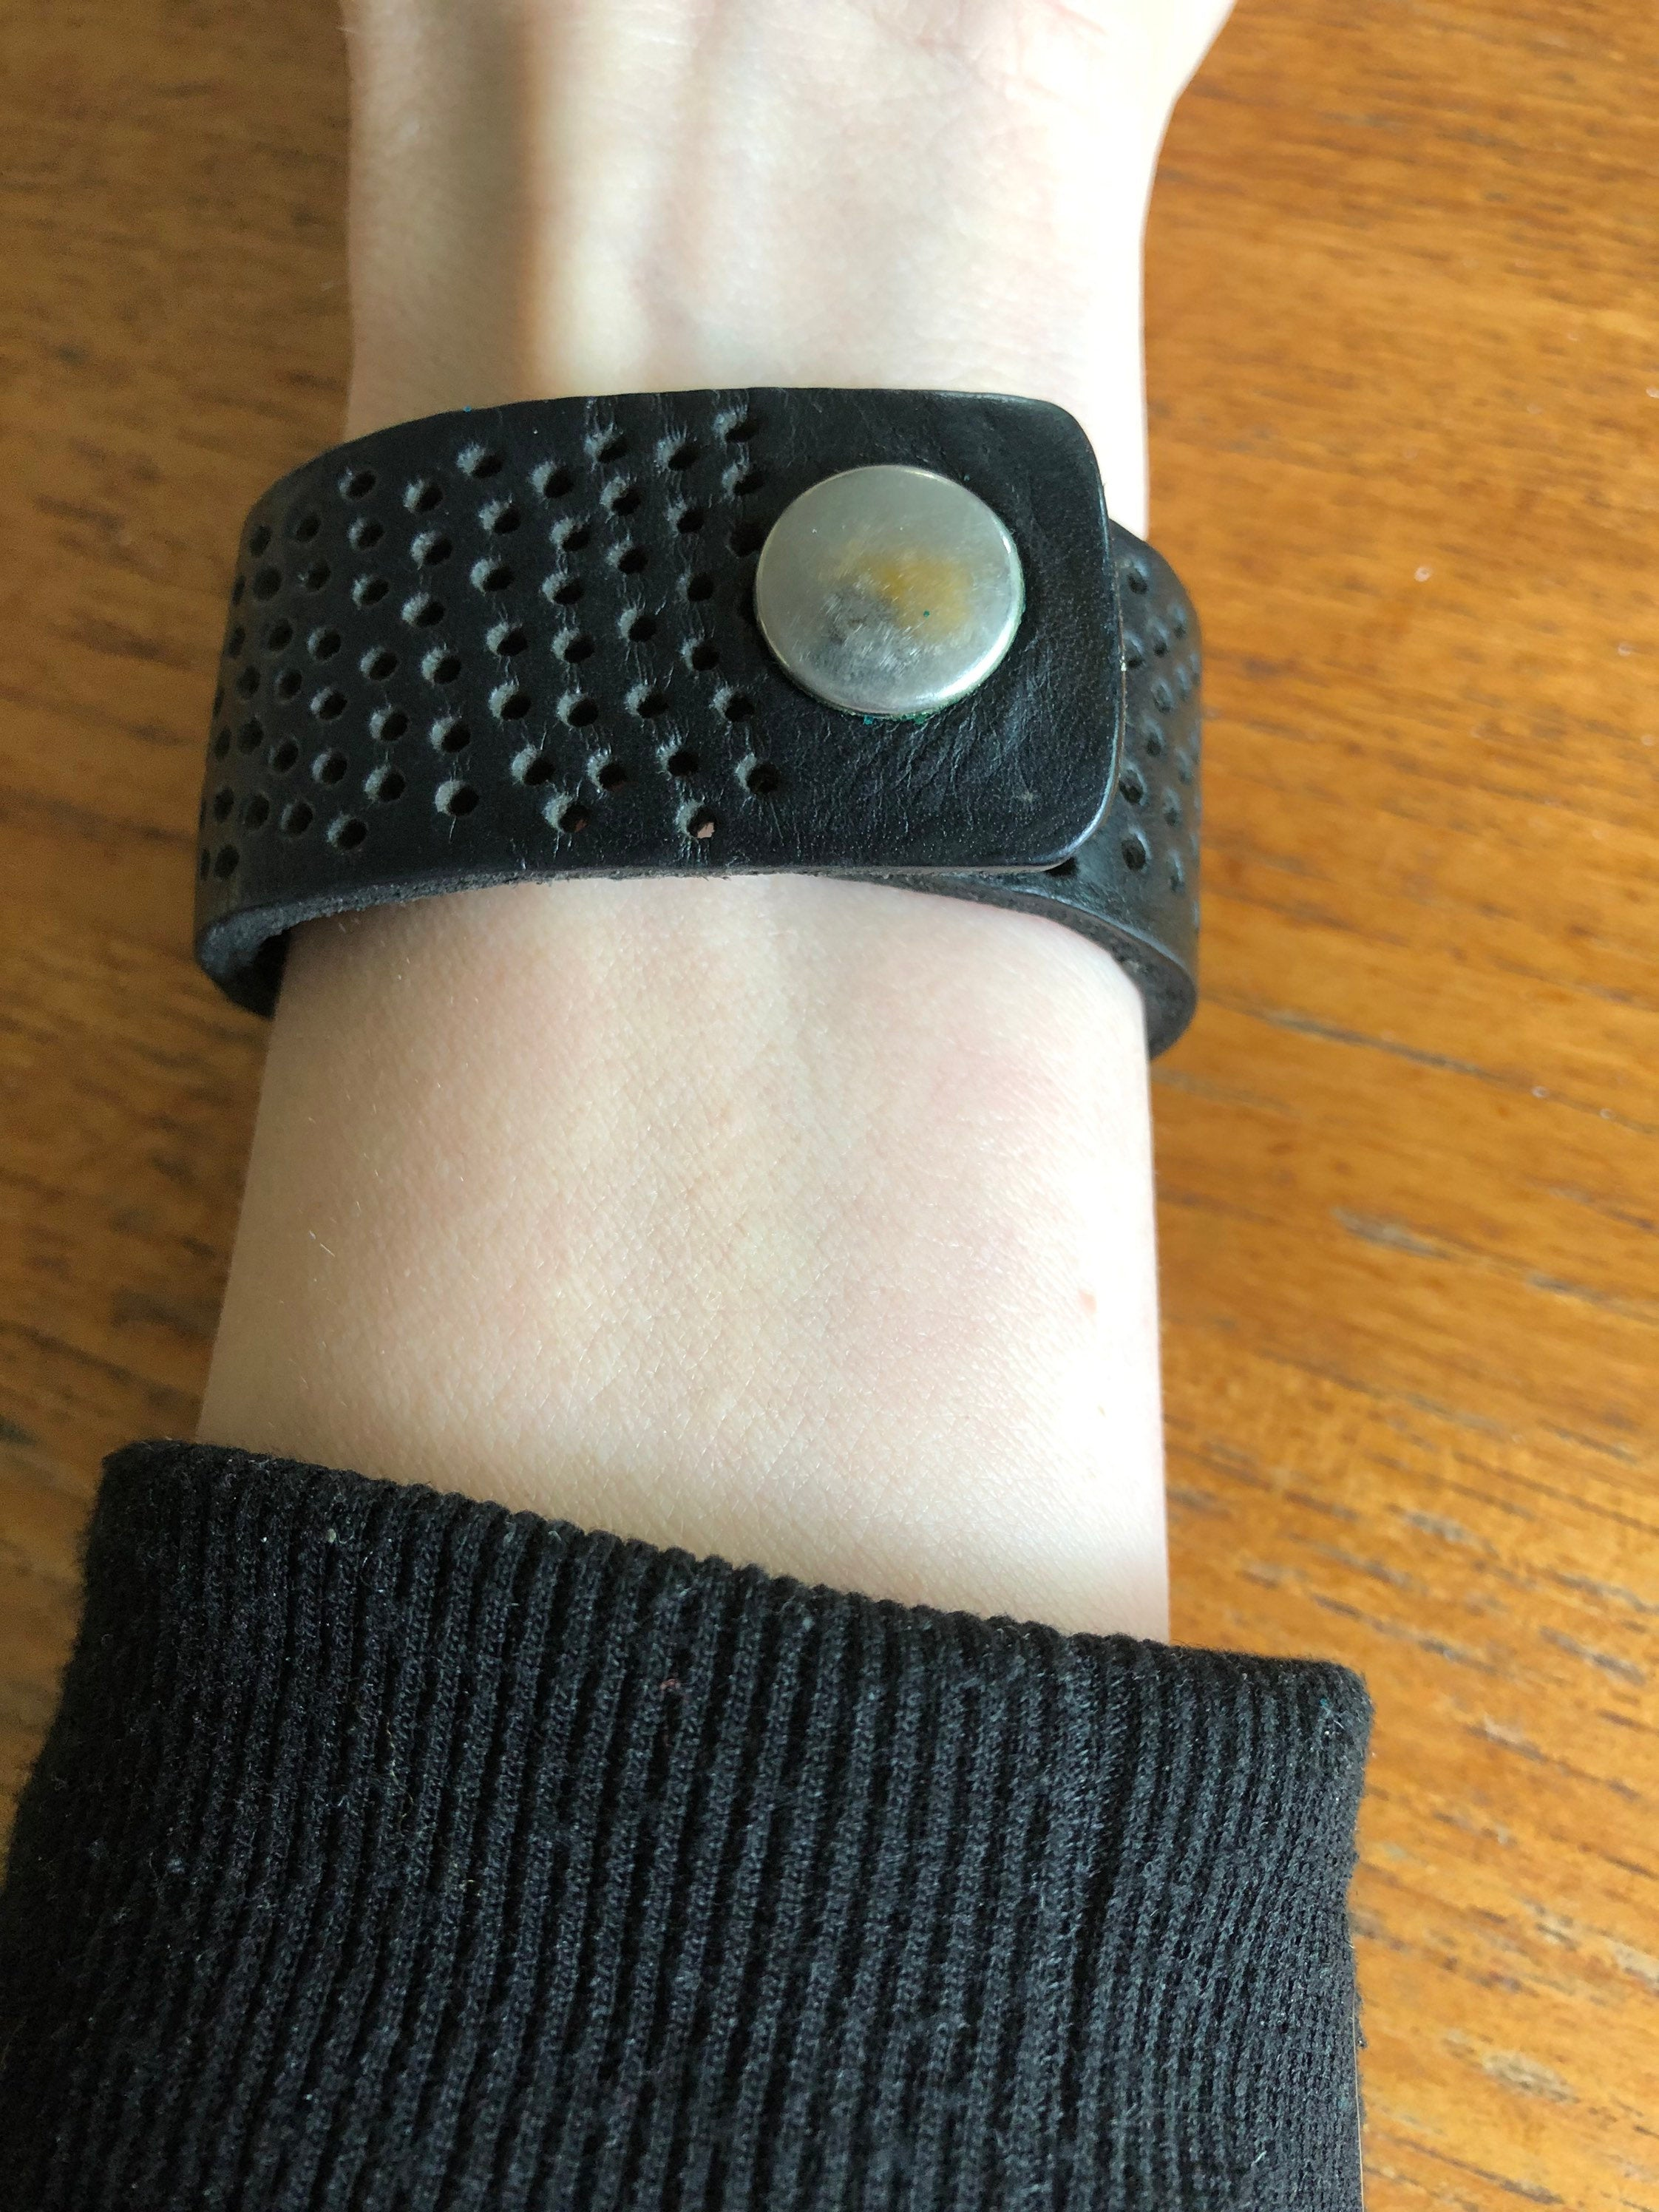 Black leather bracelet with perforated design and snap closure on model's arm with long sleeve